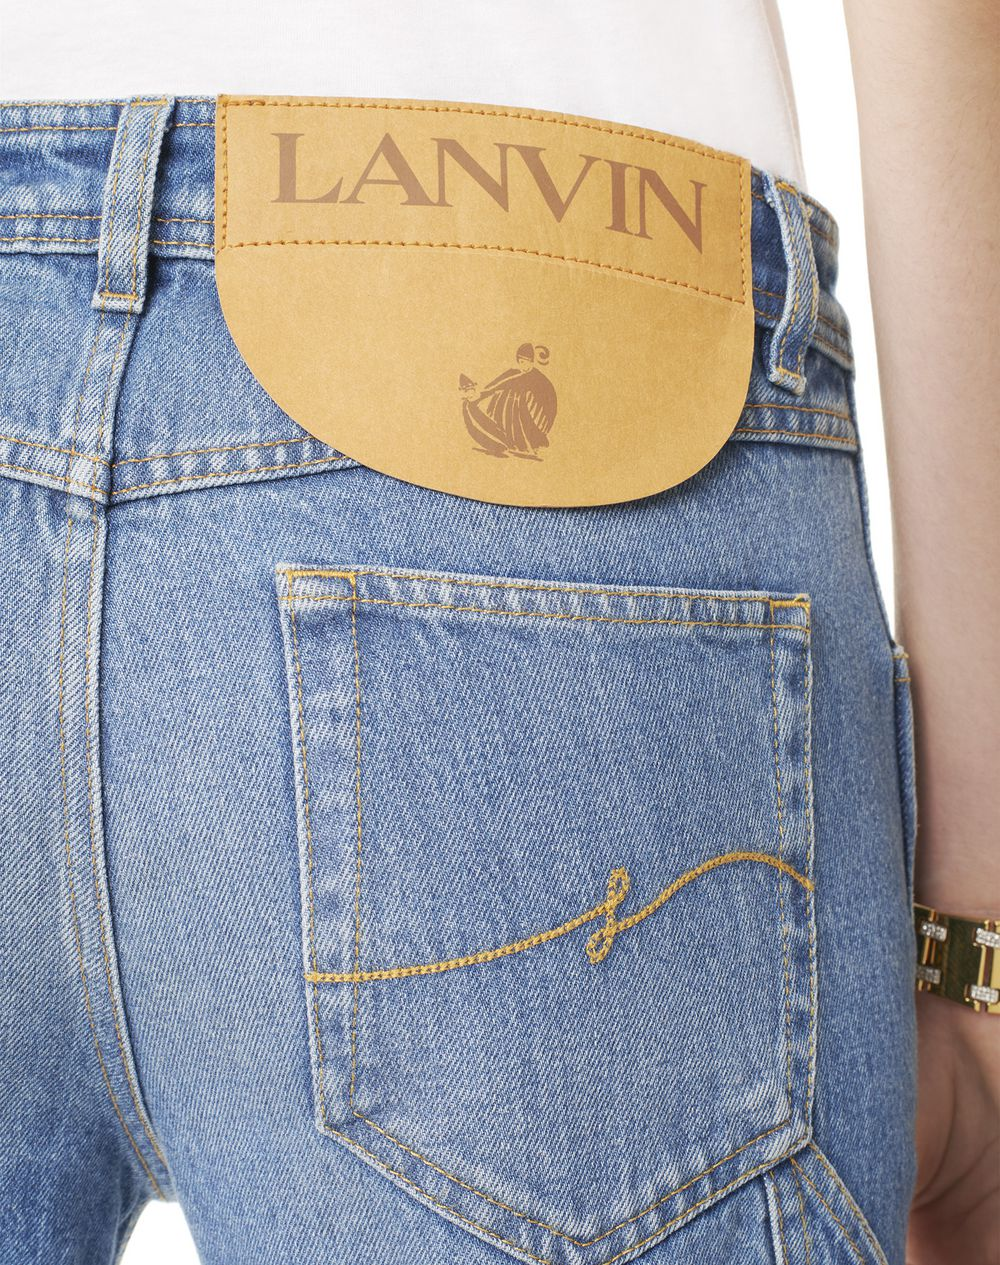 TWISTED LEG DENIM PANTS - Lanvin